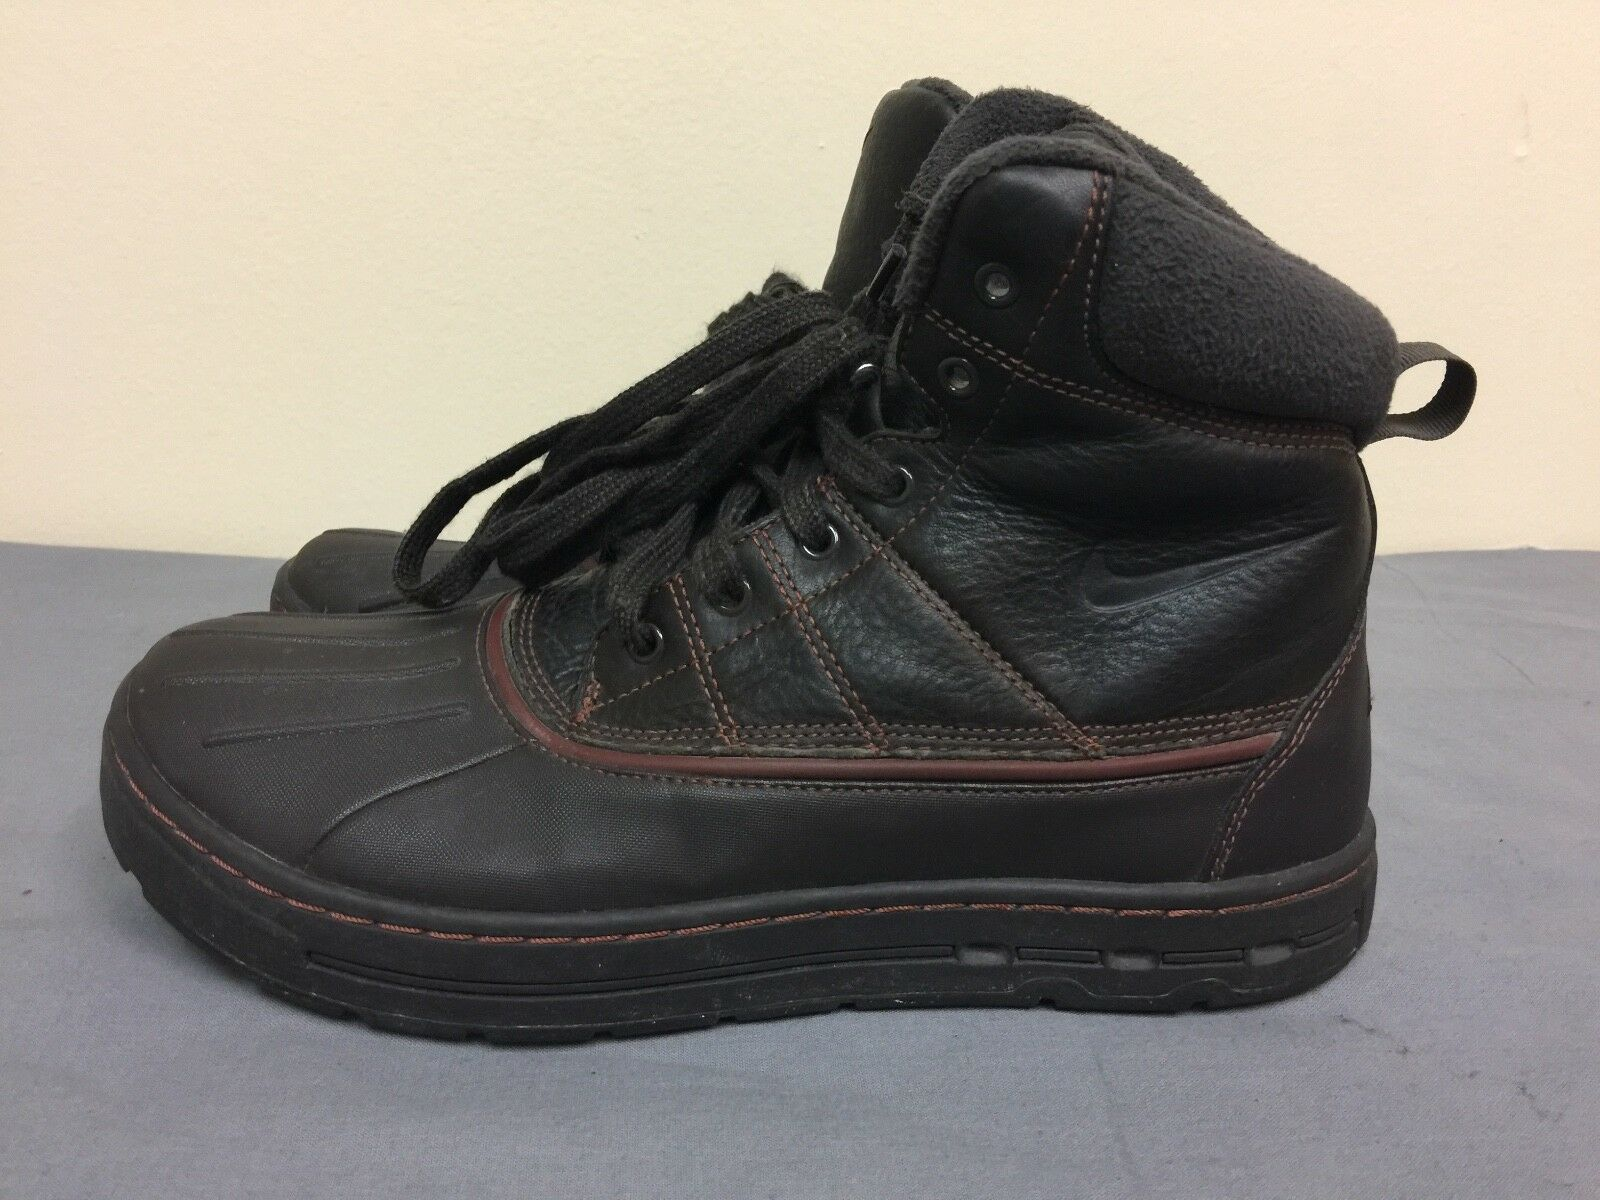 Nike Men's 386469 Ankle-High Brown Boot size US 10